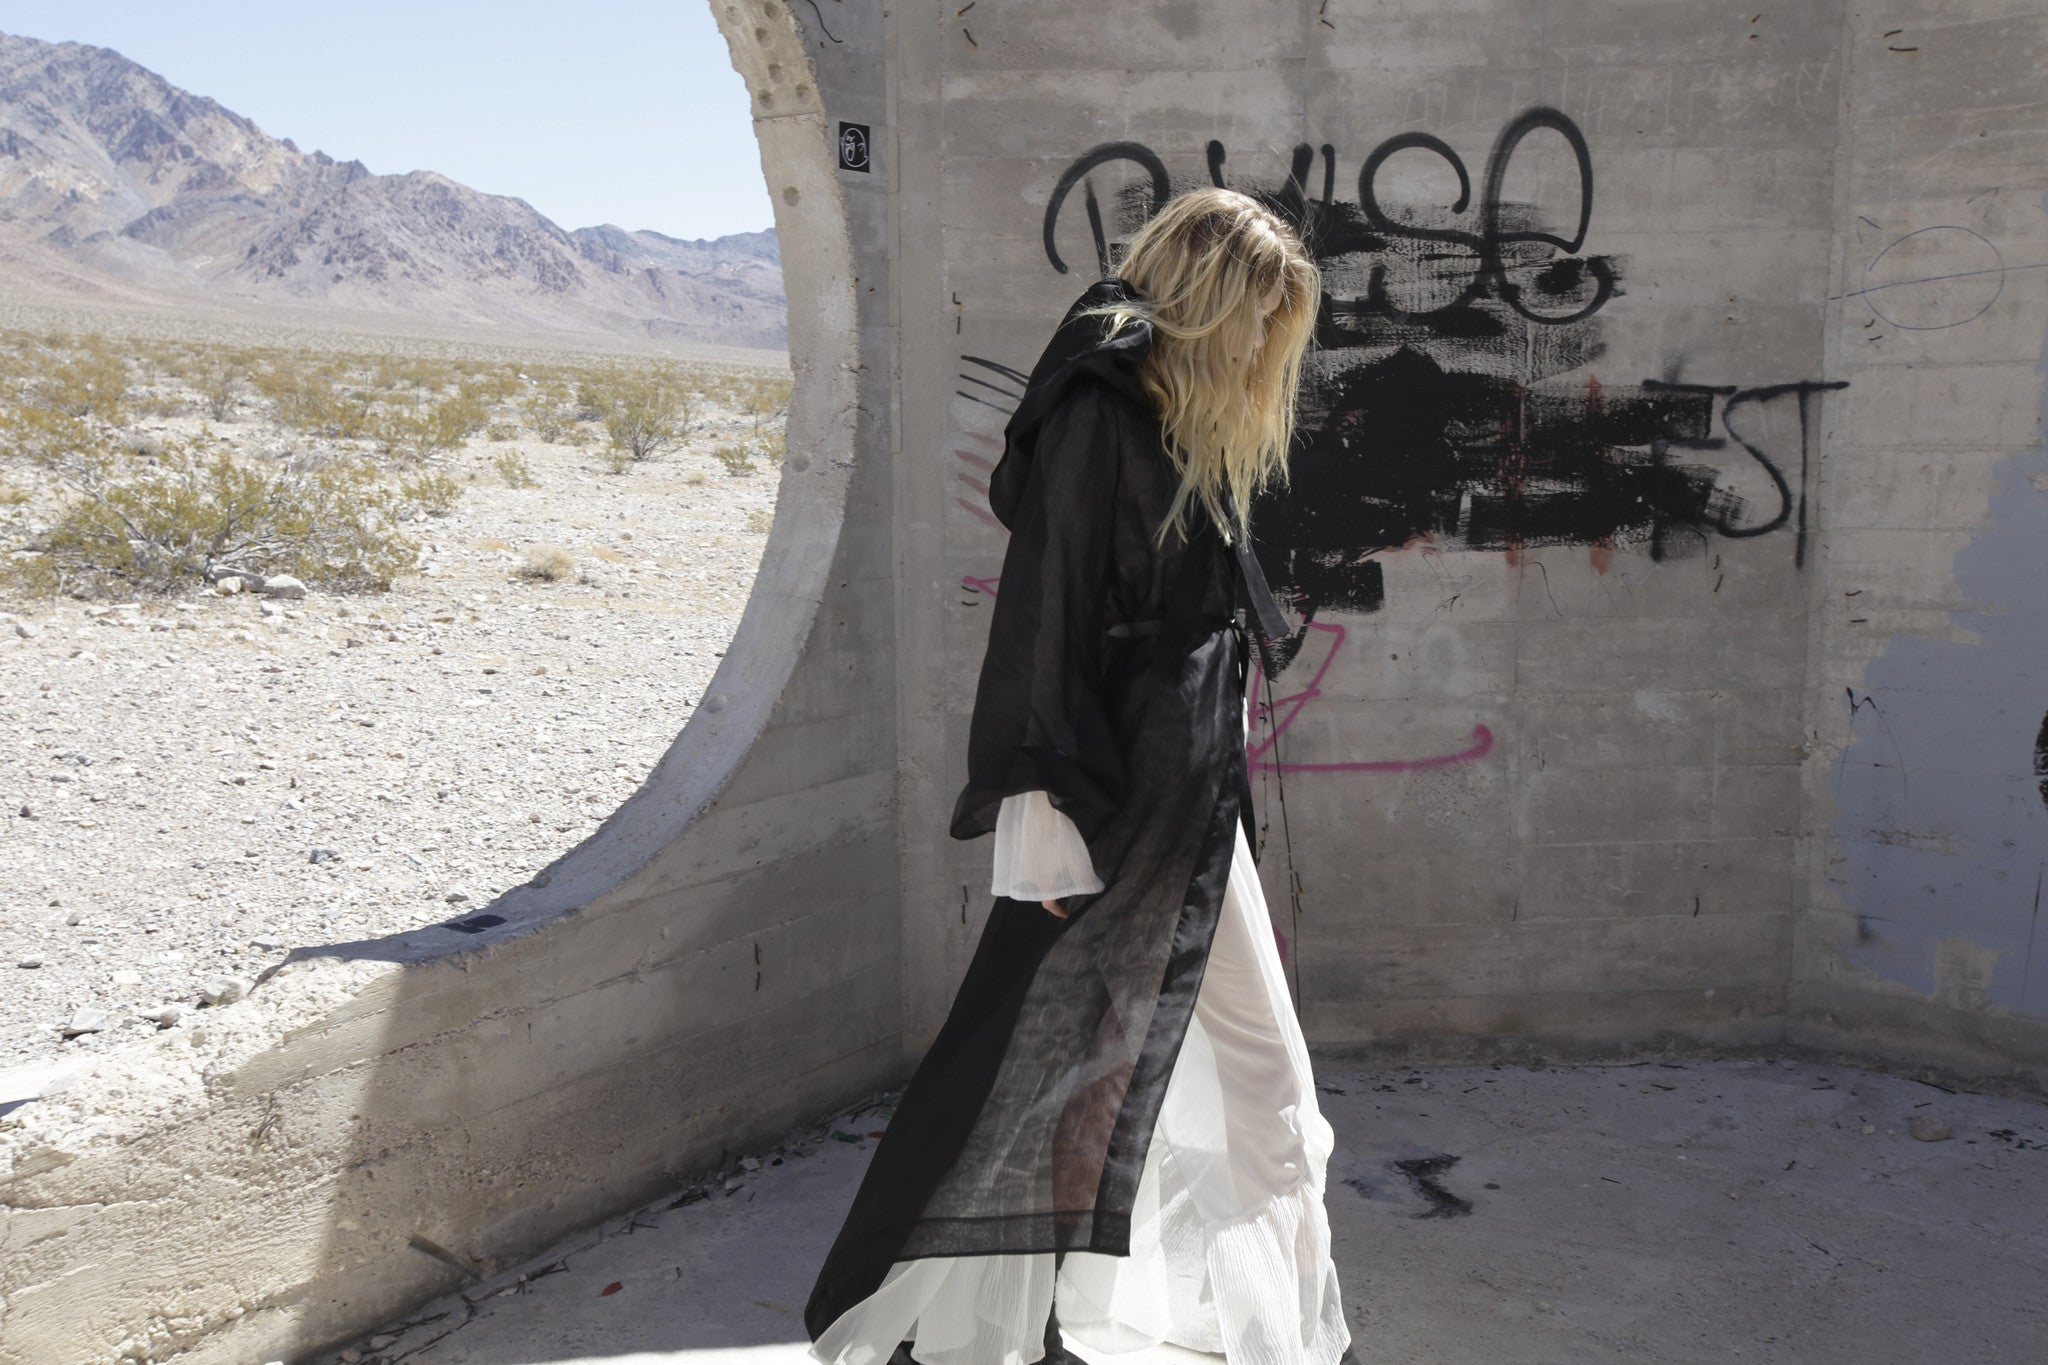 Maggie Laine IMG model Sheer Hood Hooded Cape Cloak White Sheer Dress Wendy Nichol Clothing Designer SS17 Fashion Runway Show Death Valley Desert Shoot